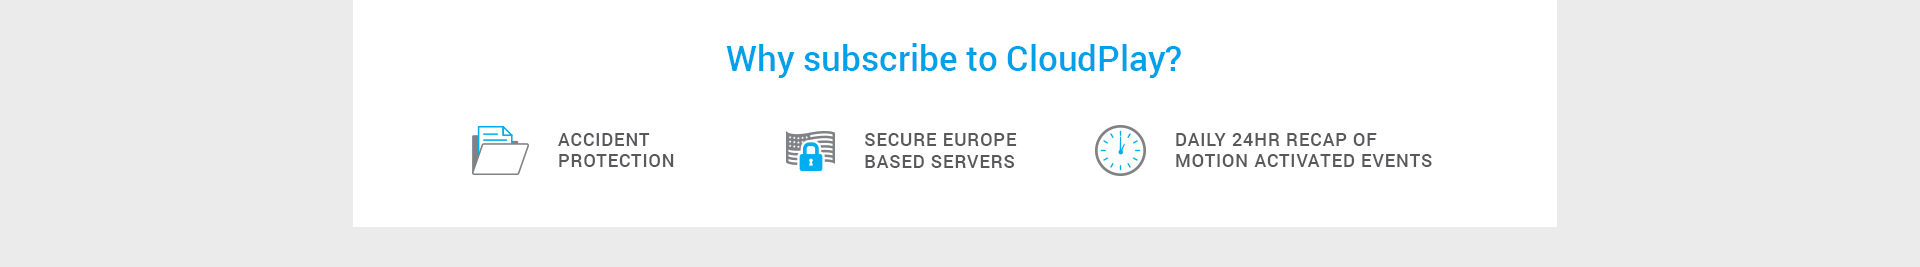 Why subscribe to CloudPlay?